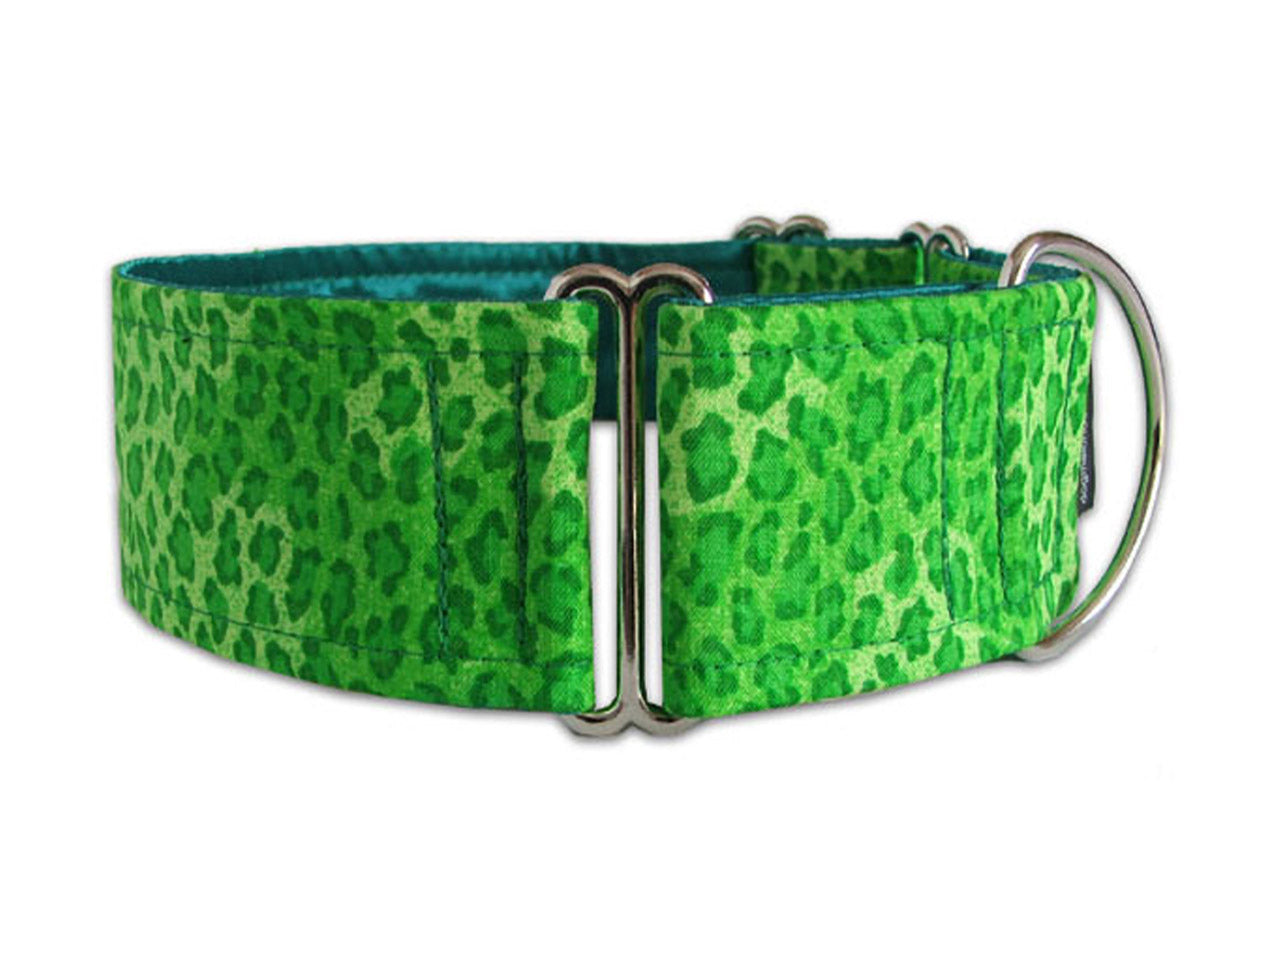 Wild green leopard print collar is perfect for any pooch with a wild side!